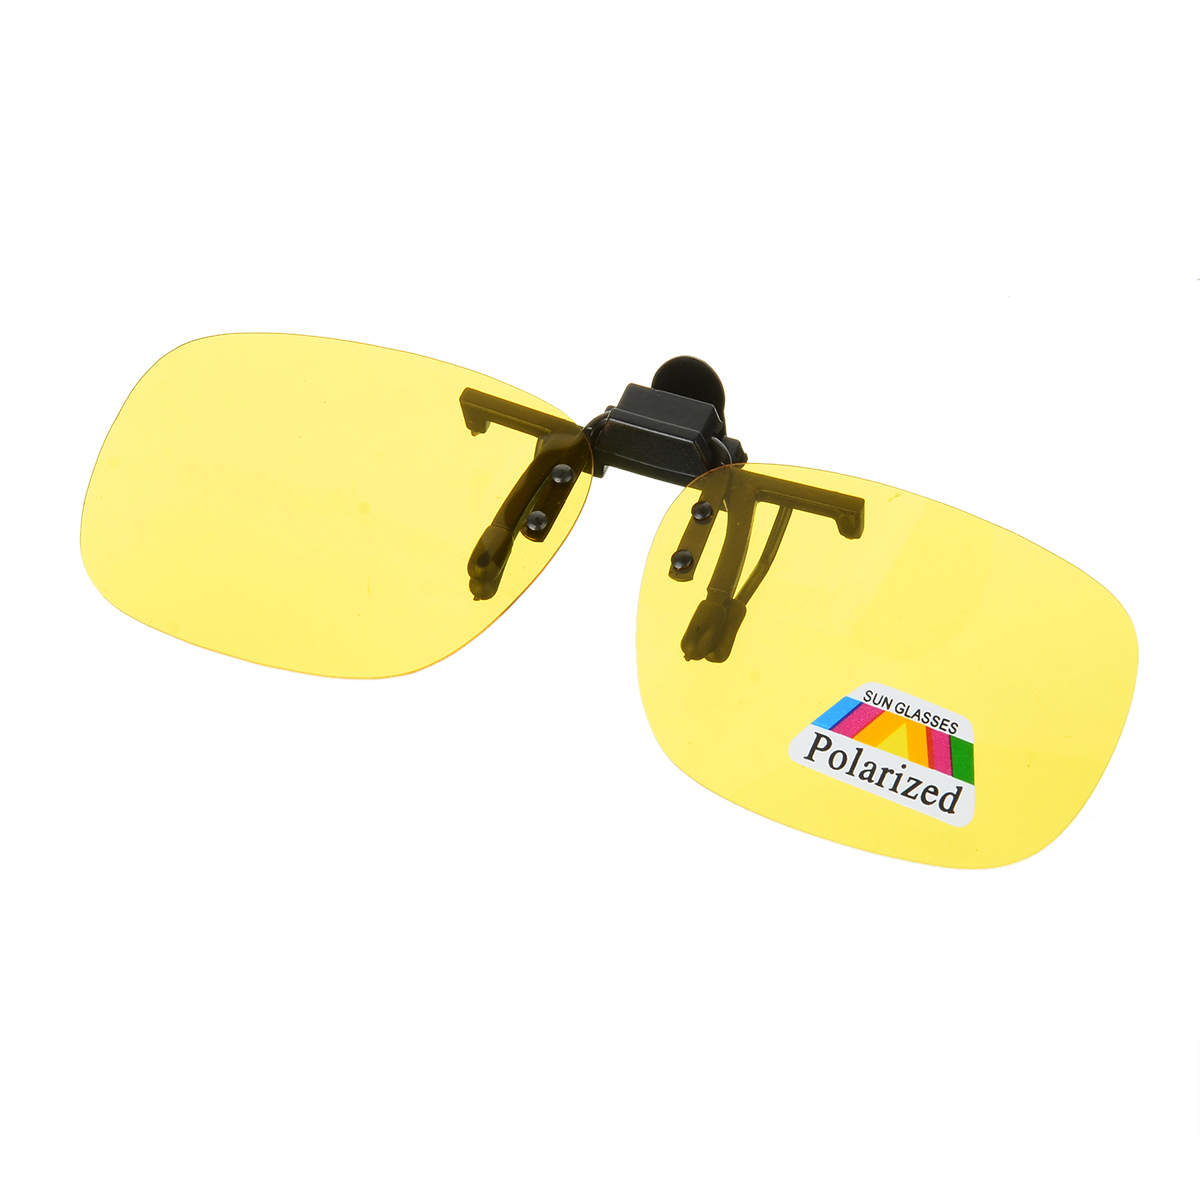 Polarized Clip-on Sunglasses Night Vision Unisex Flip Up Over Prescription Glasses For Driving Fishing Sport Ultra Light